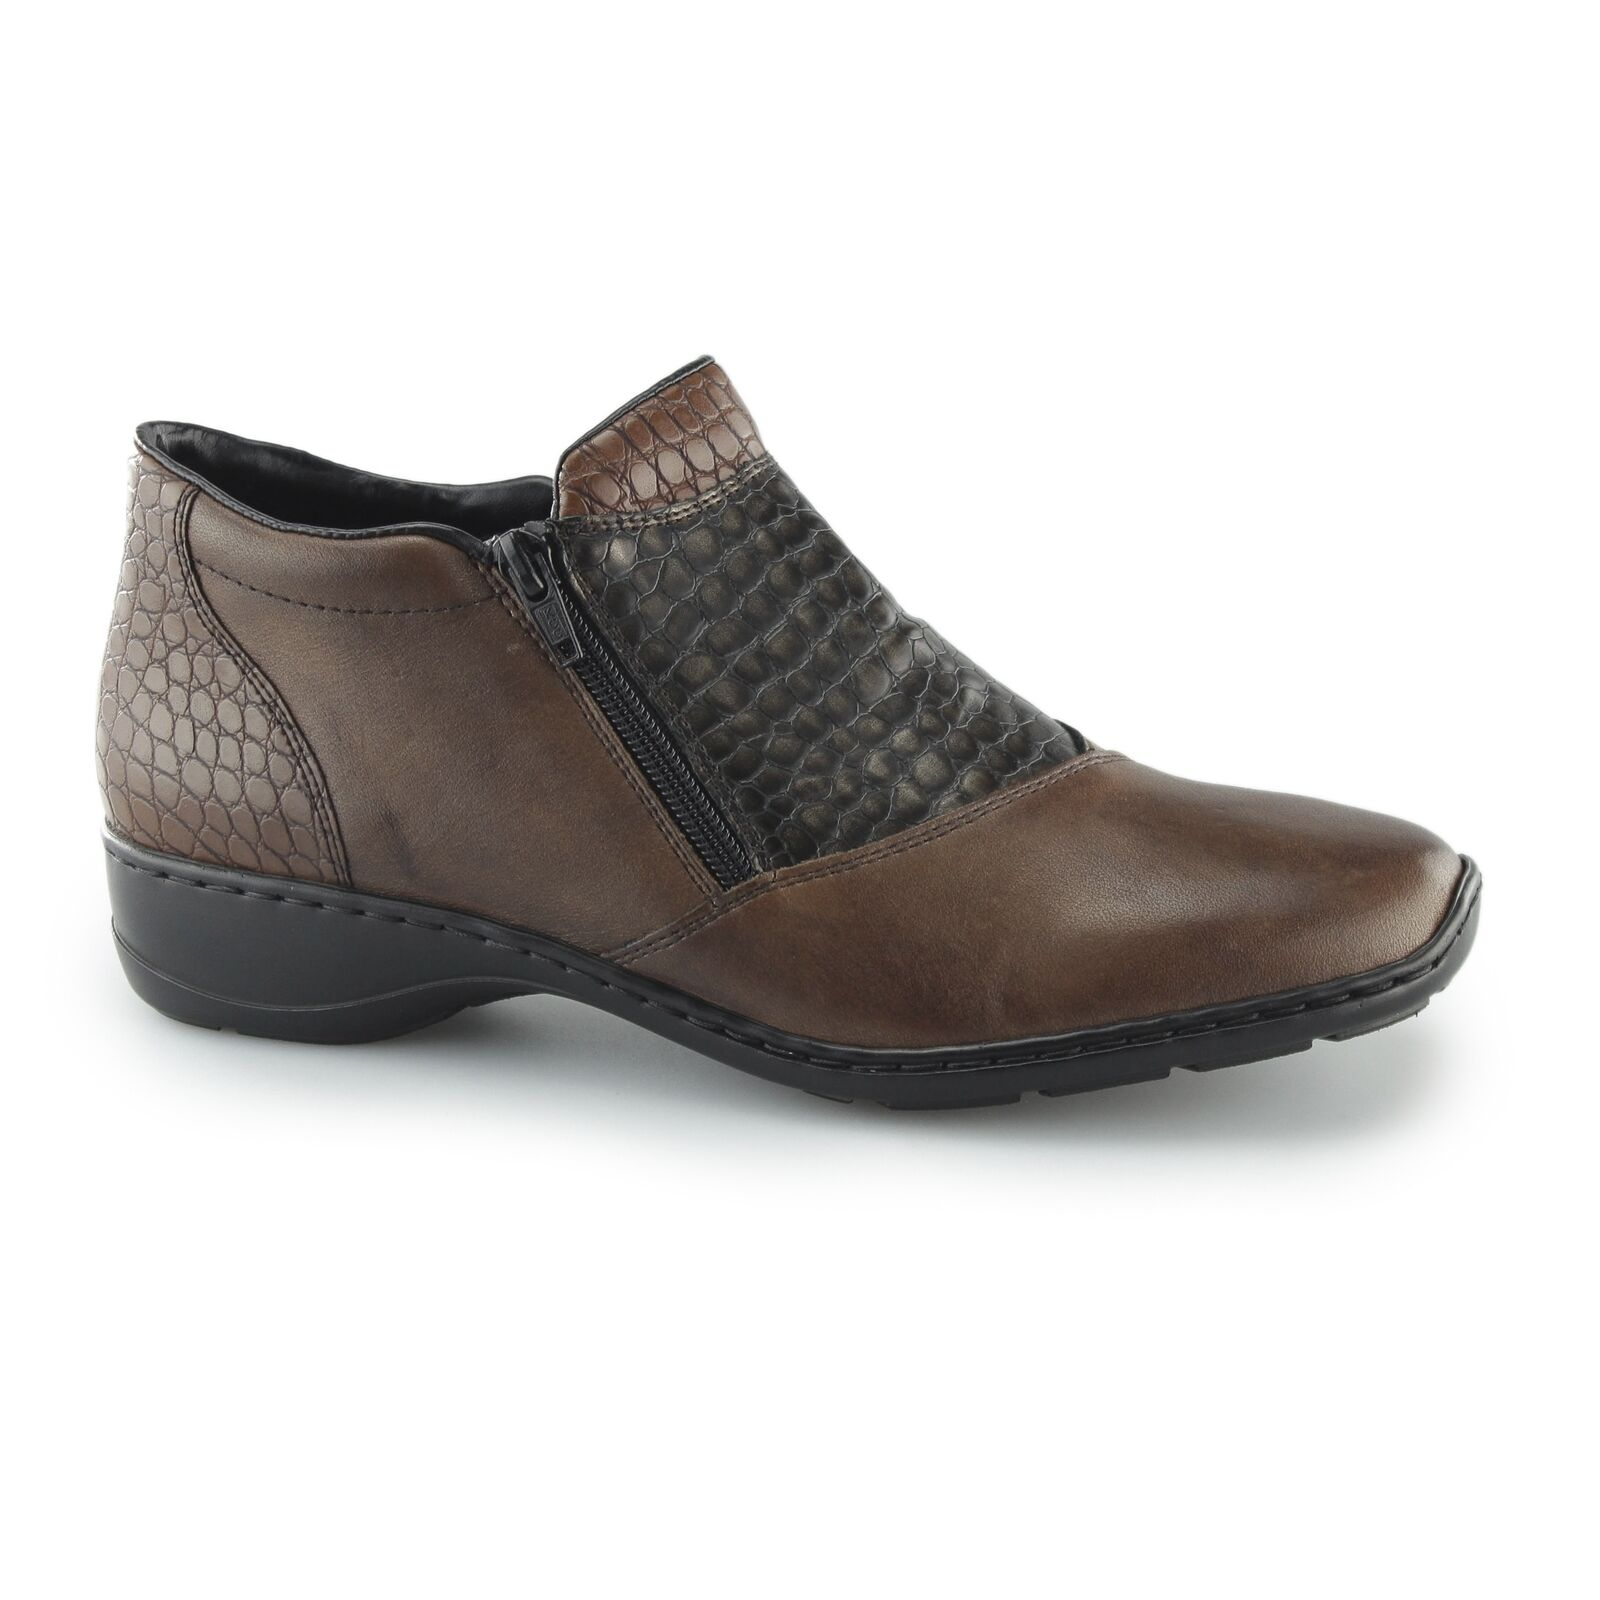 Rieker 58359-25 Ladies Womens Leather Dual Zip Up Warm Lined Ankle Boots Brown